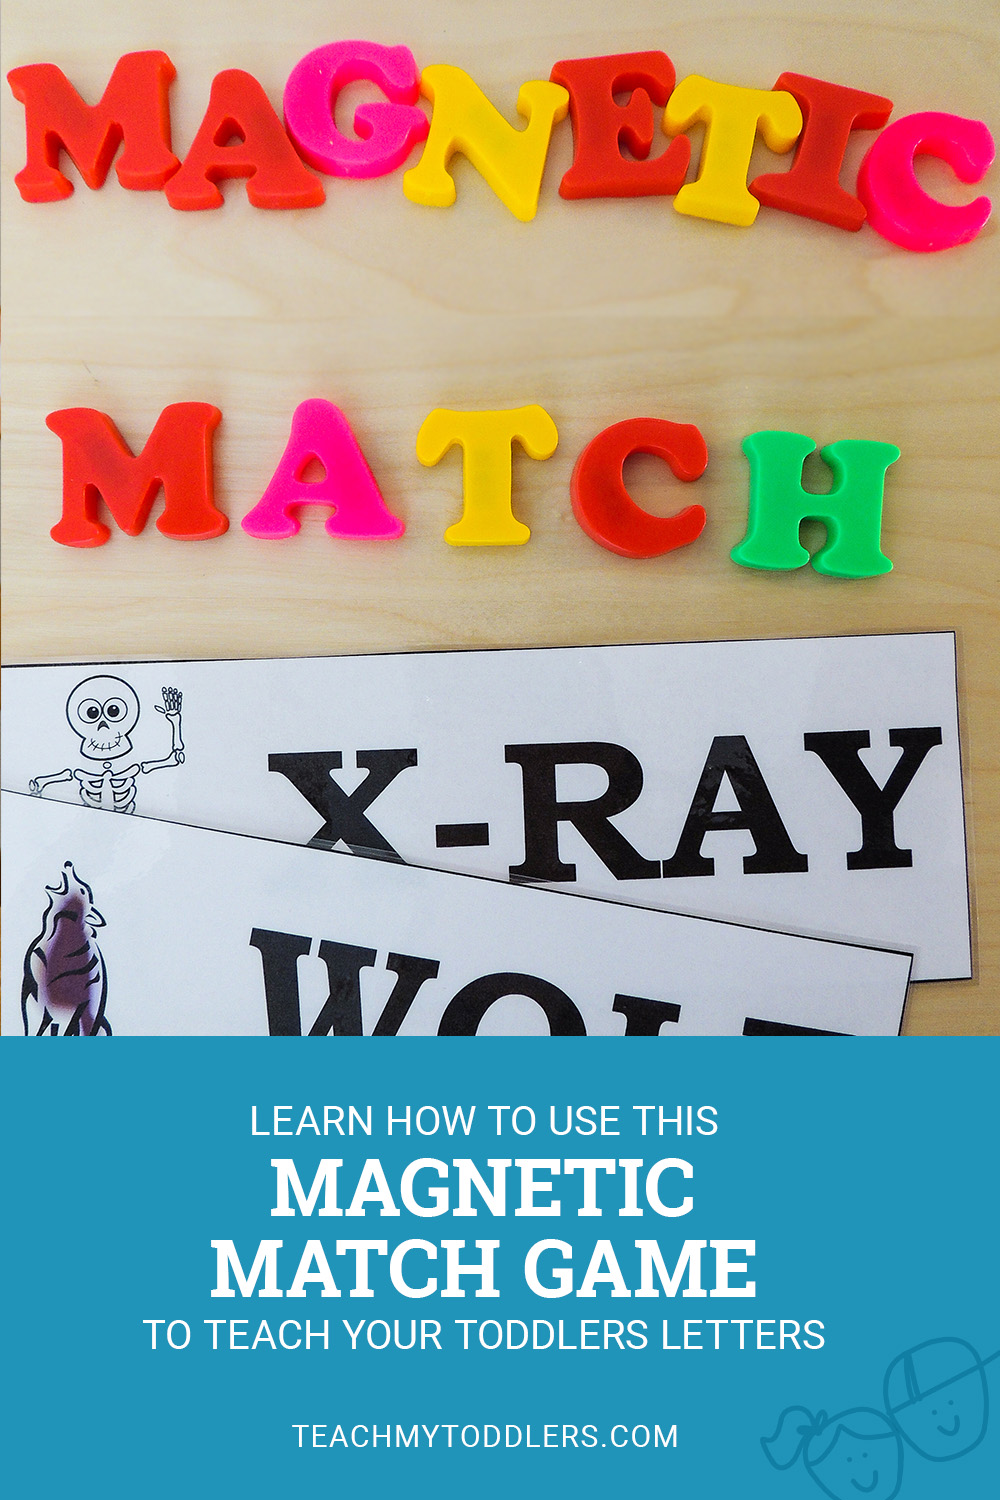 Learn how to use this magnetic match game to teach toddlers letters